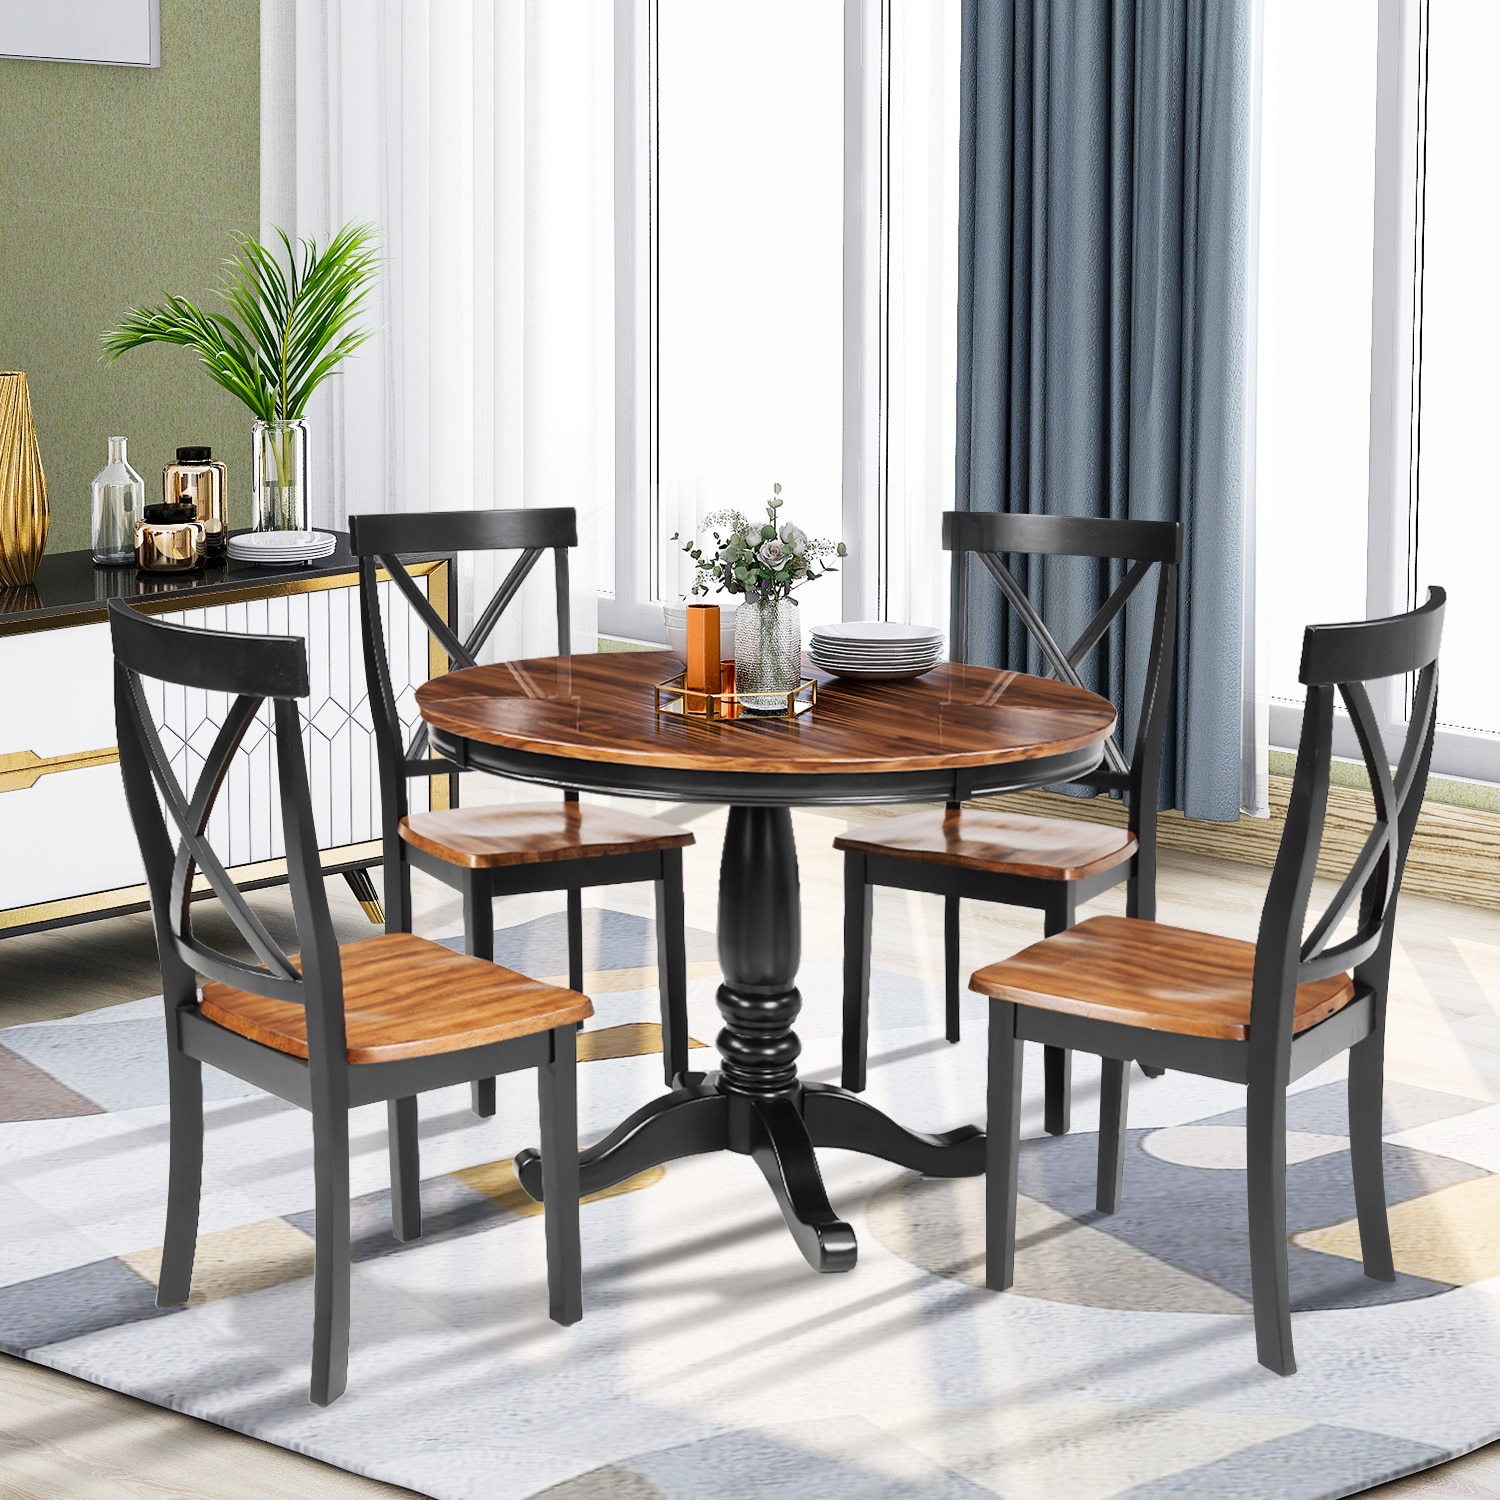 Nordic Style 5 Pieces Dining Table Kitchen Furniture Set 4 Chairs Solid Wood Table Restaurant Table 5pcs dining chair set 4 chairs 1 dining table set wooden metal furniture brown black beige home kitchen office furniture